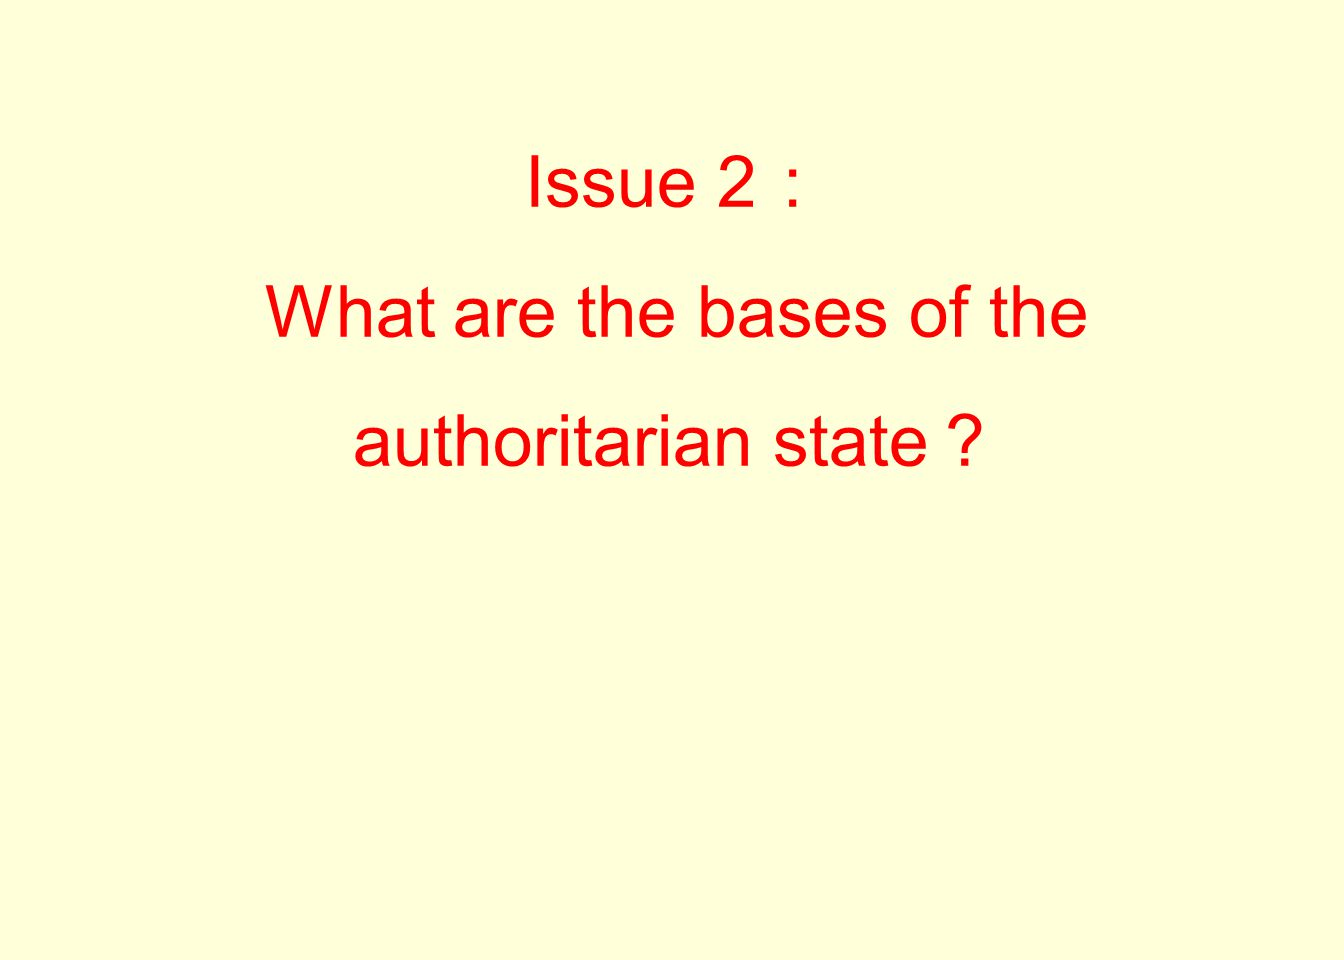 Issue 2: What are the bases of the authoritarian state?